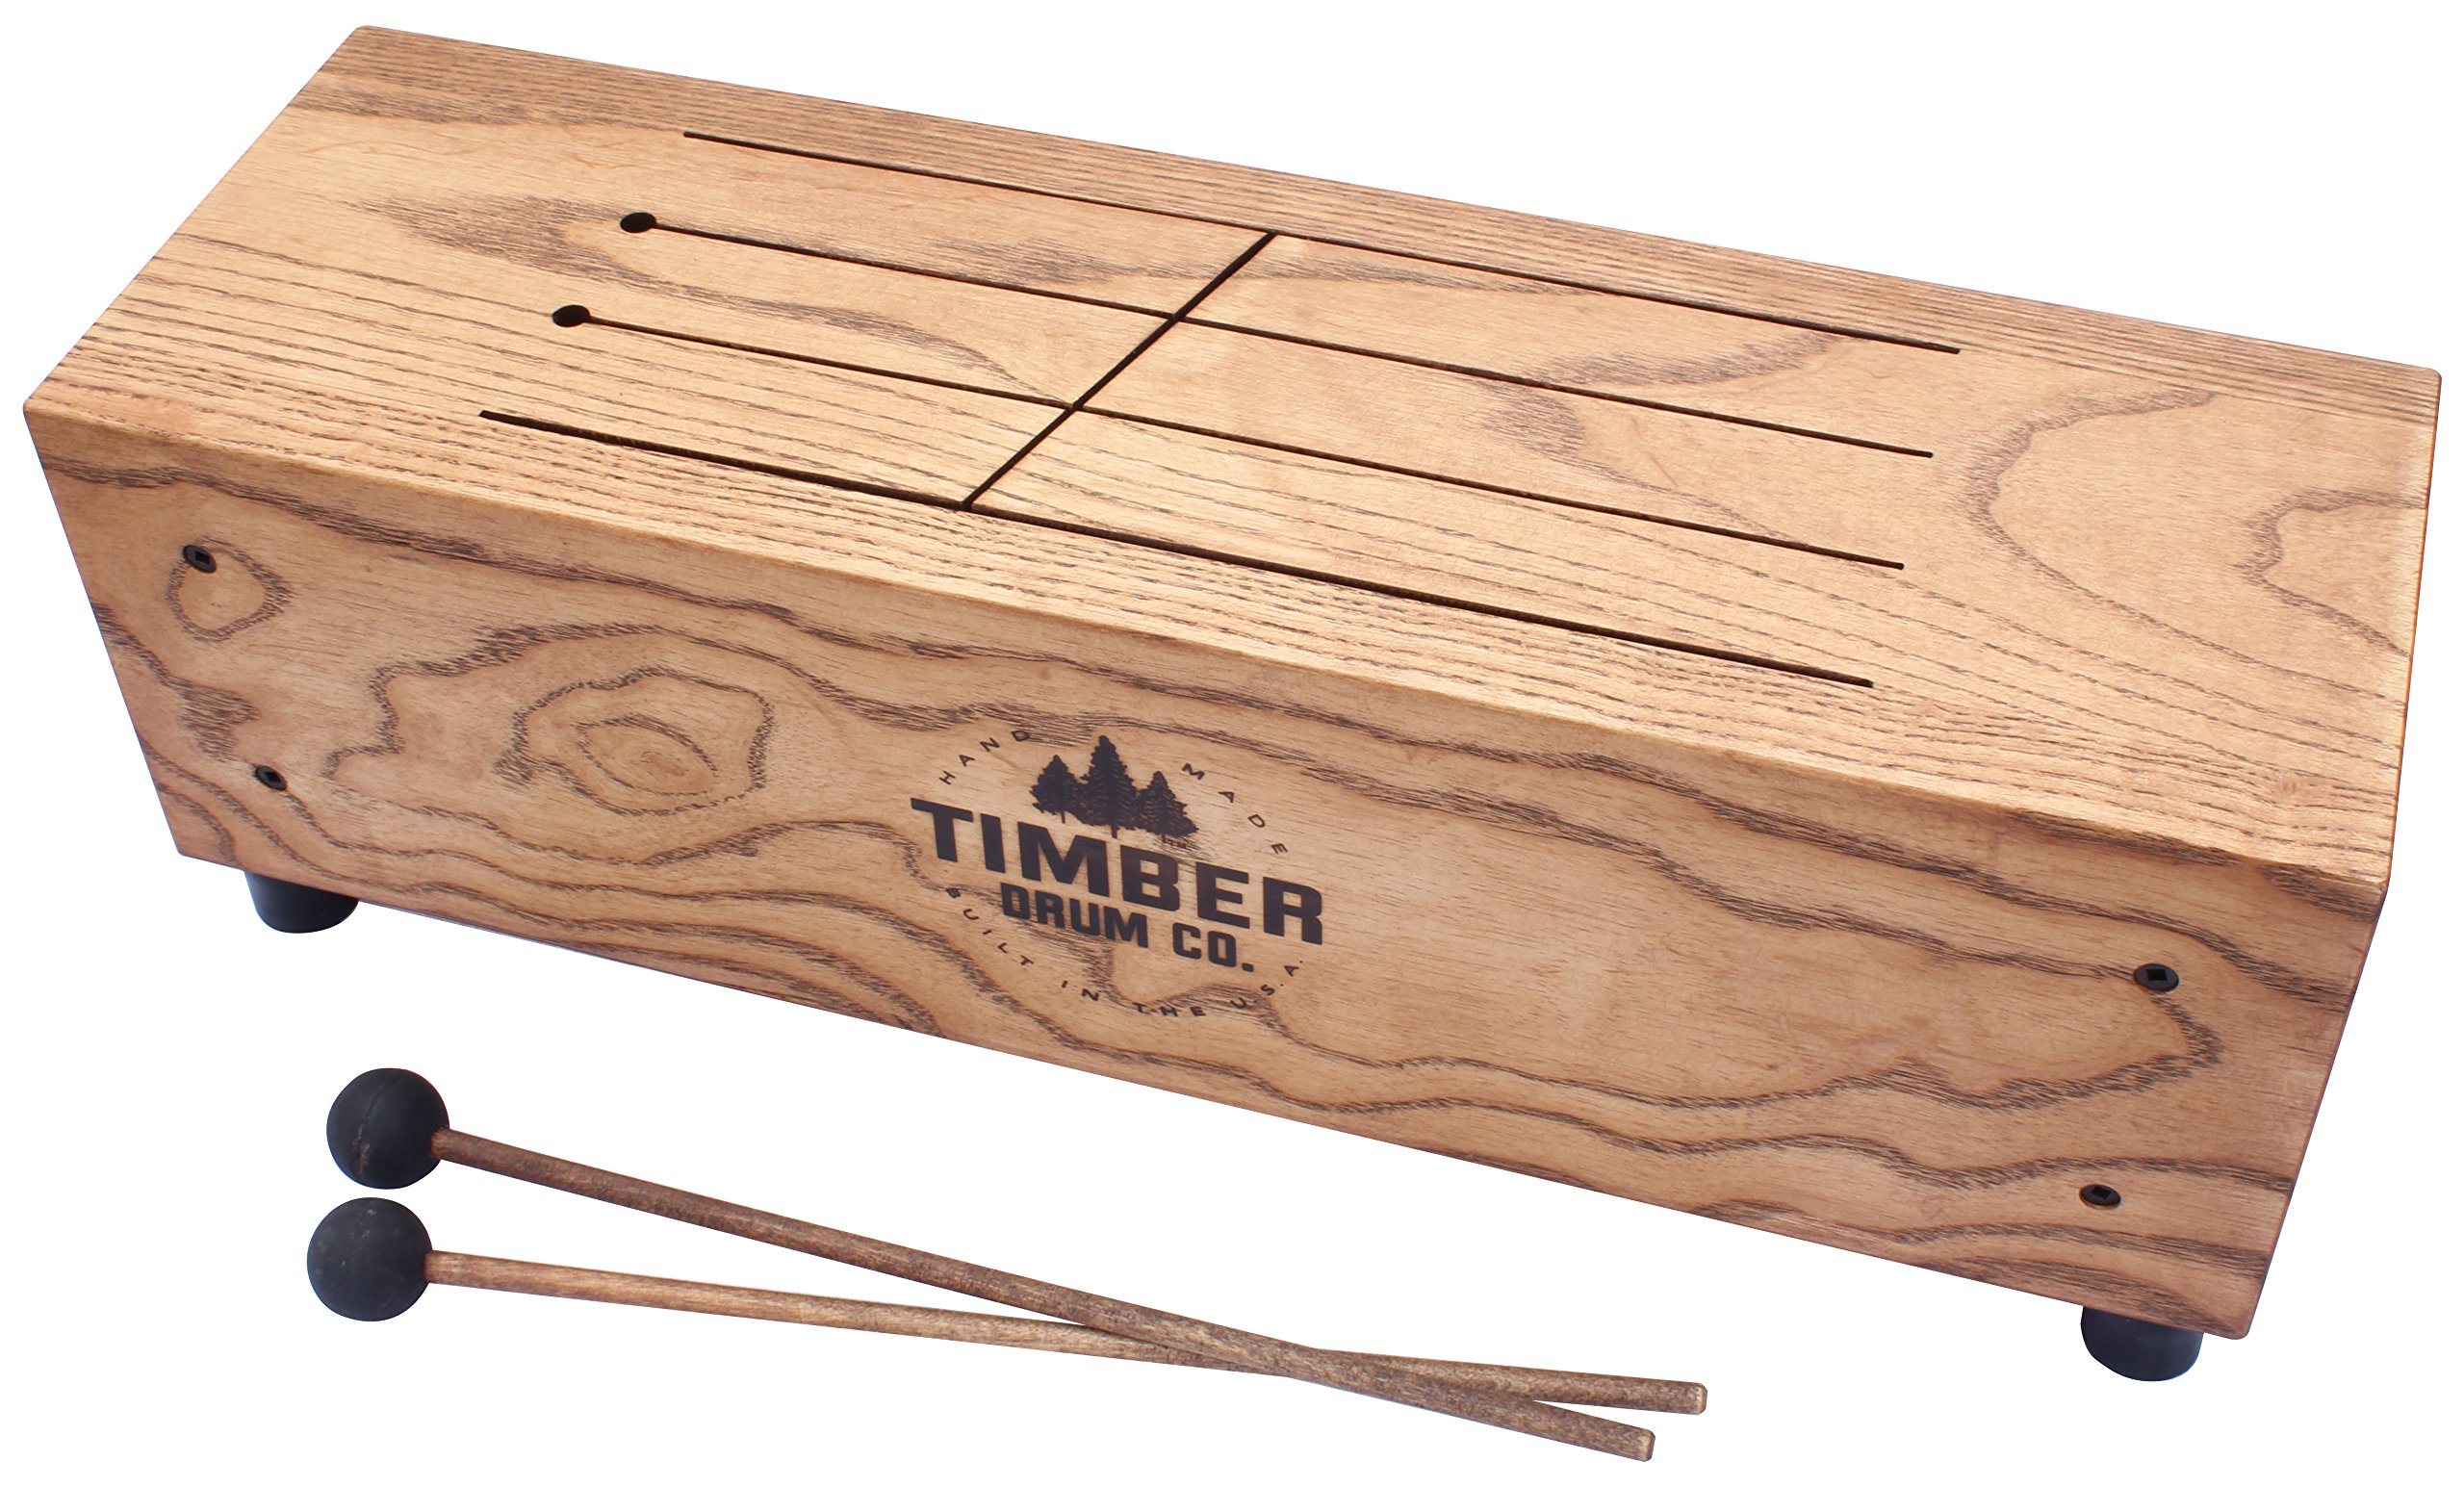 Timber Drum Co. T18-M Made in USA Slit Tongue Log Drum with Mallets (VIDEO)